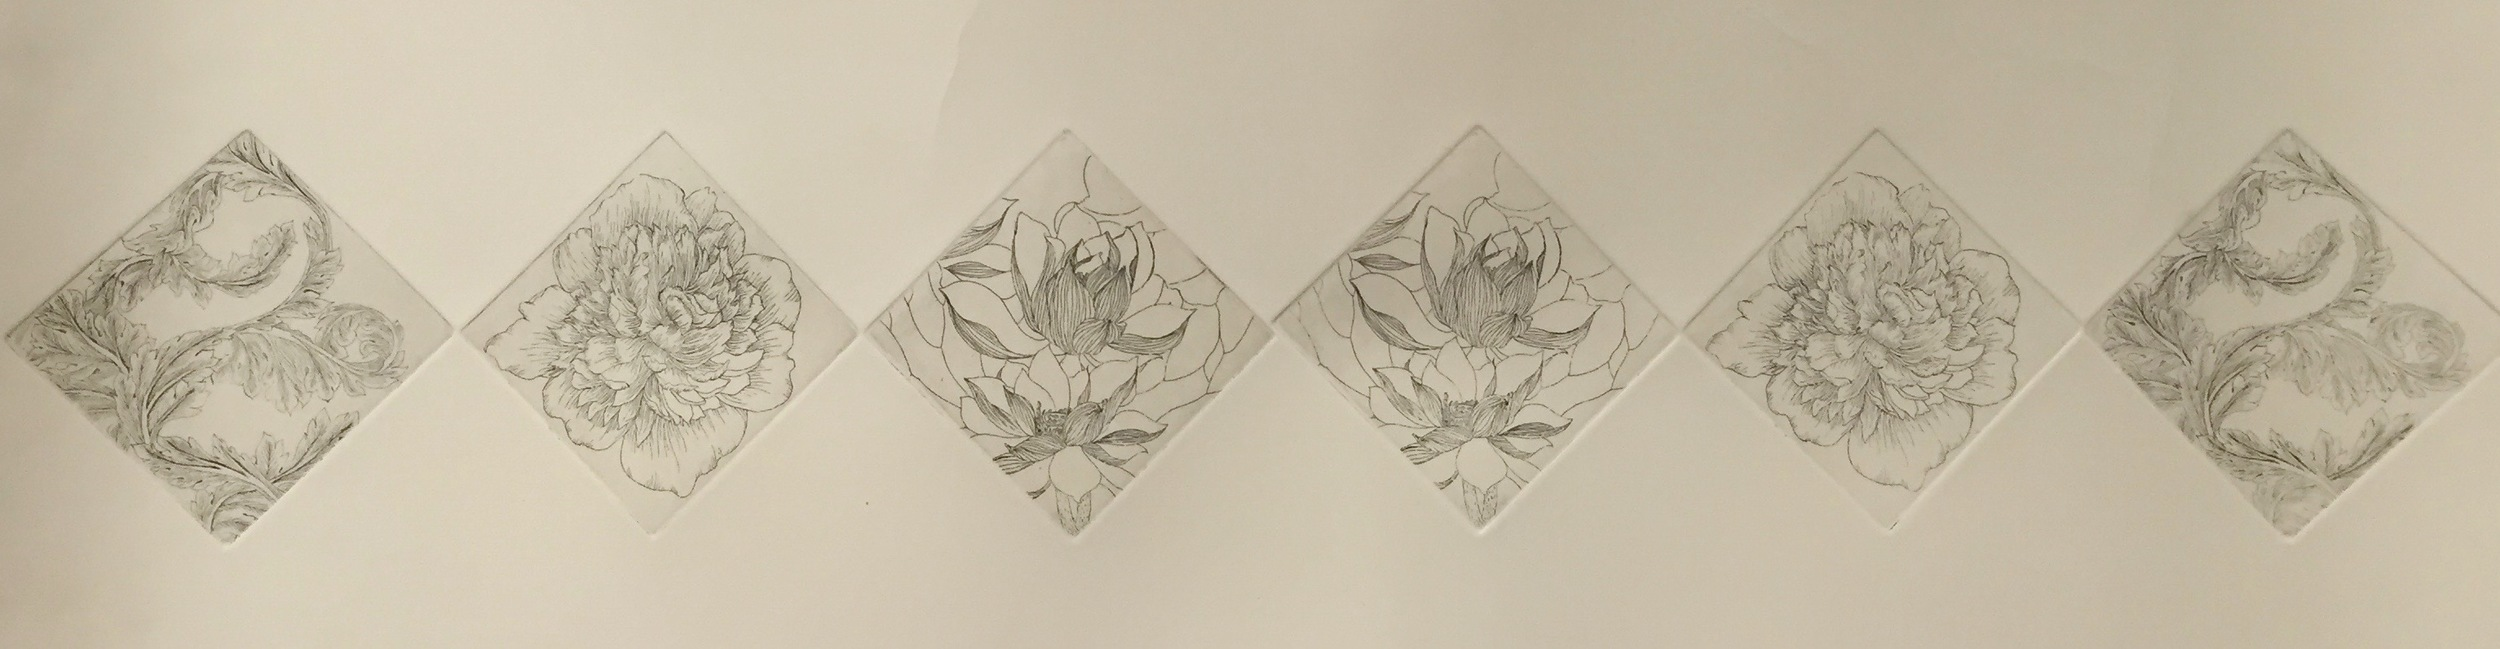 YIYI WANG   Plants in Black and White   etching